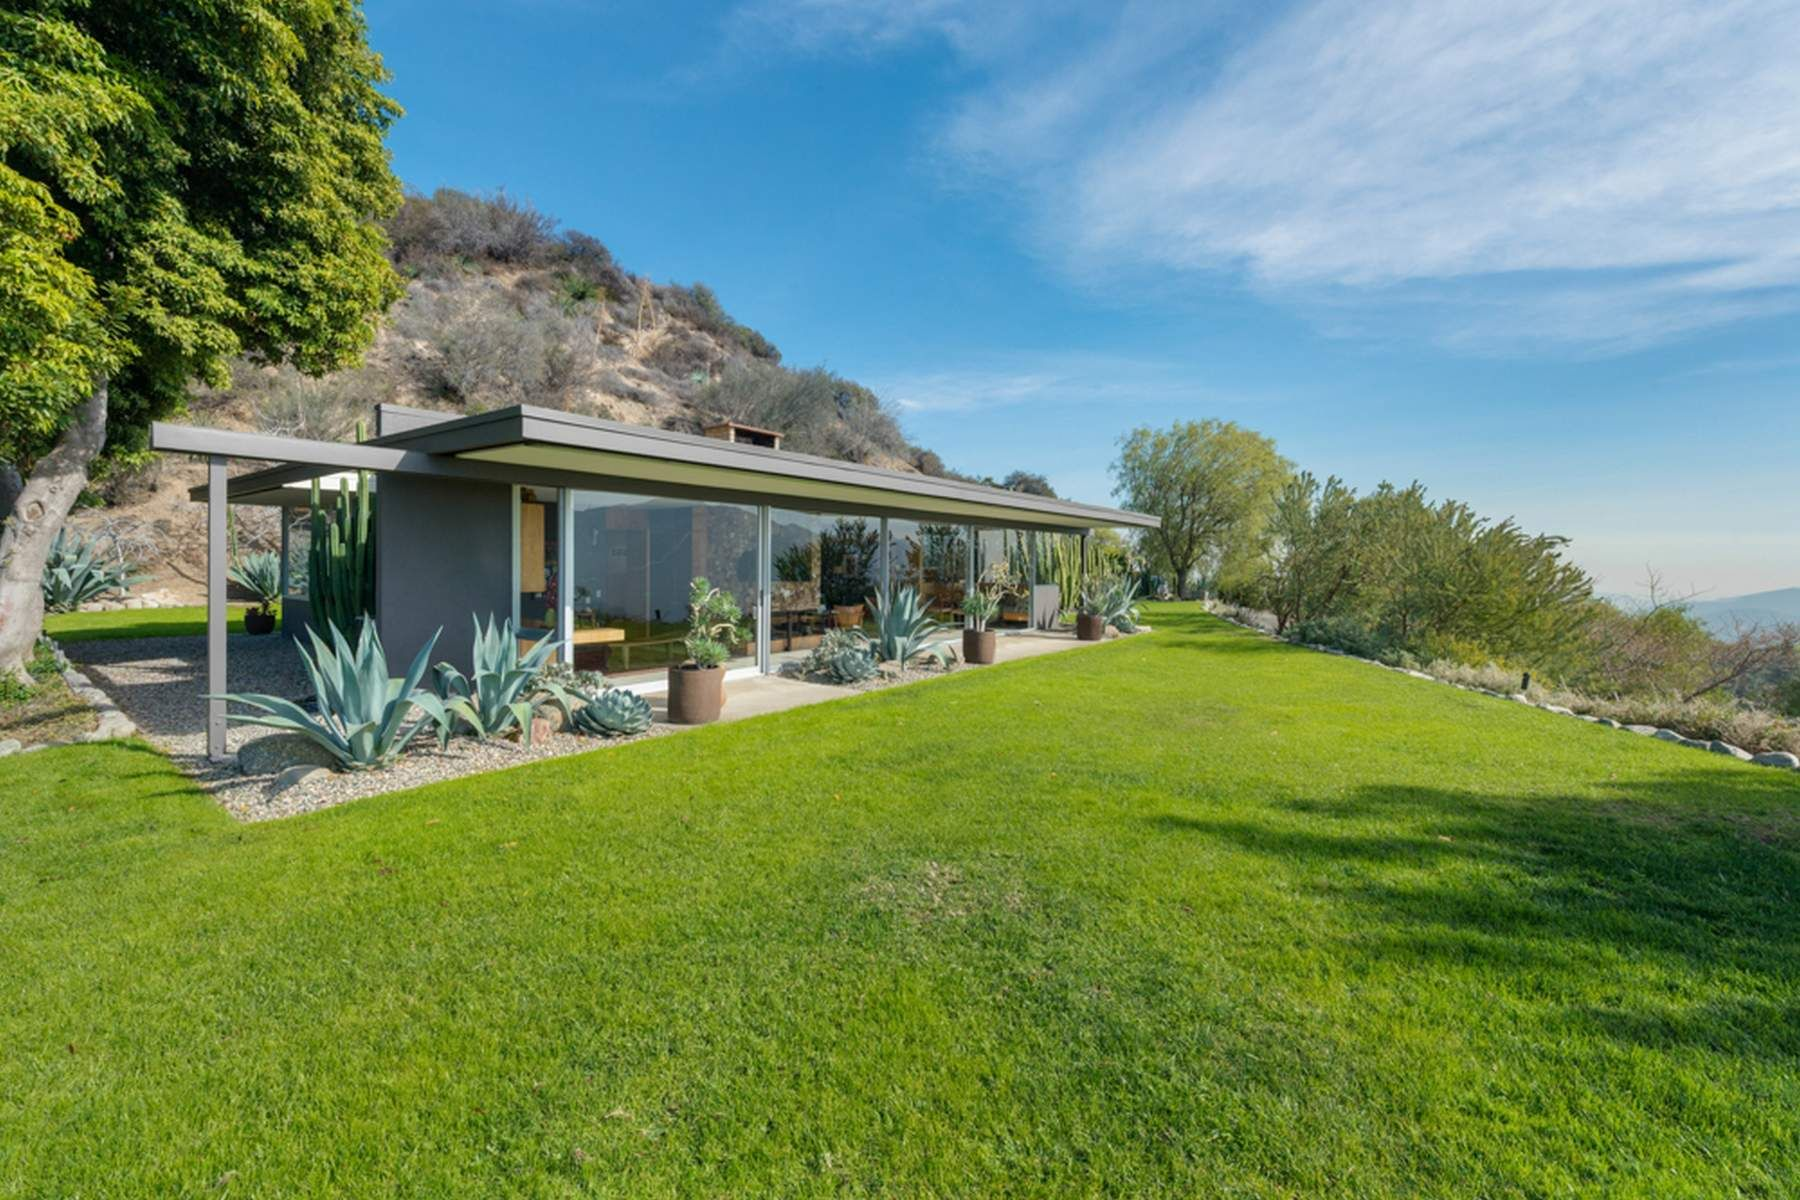 Mid Century Modern Architecture Serulnic House Richard Neutra